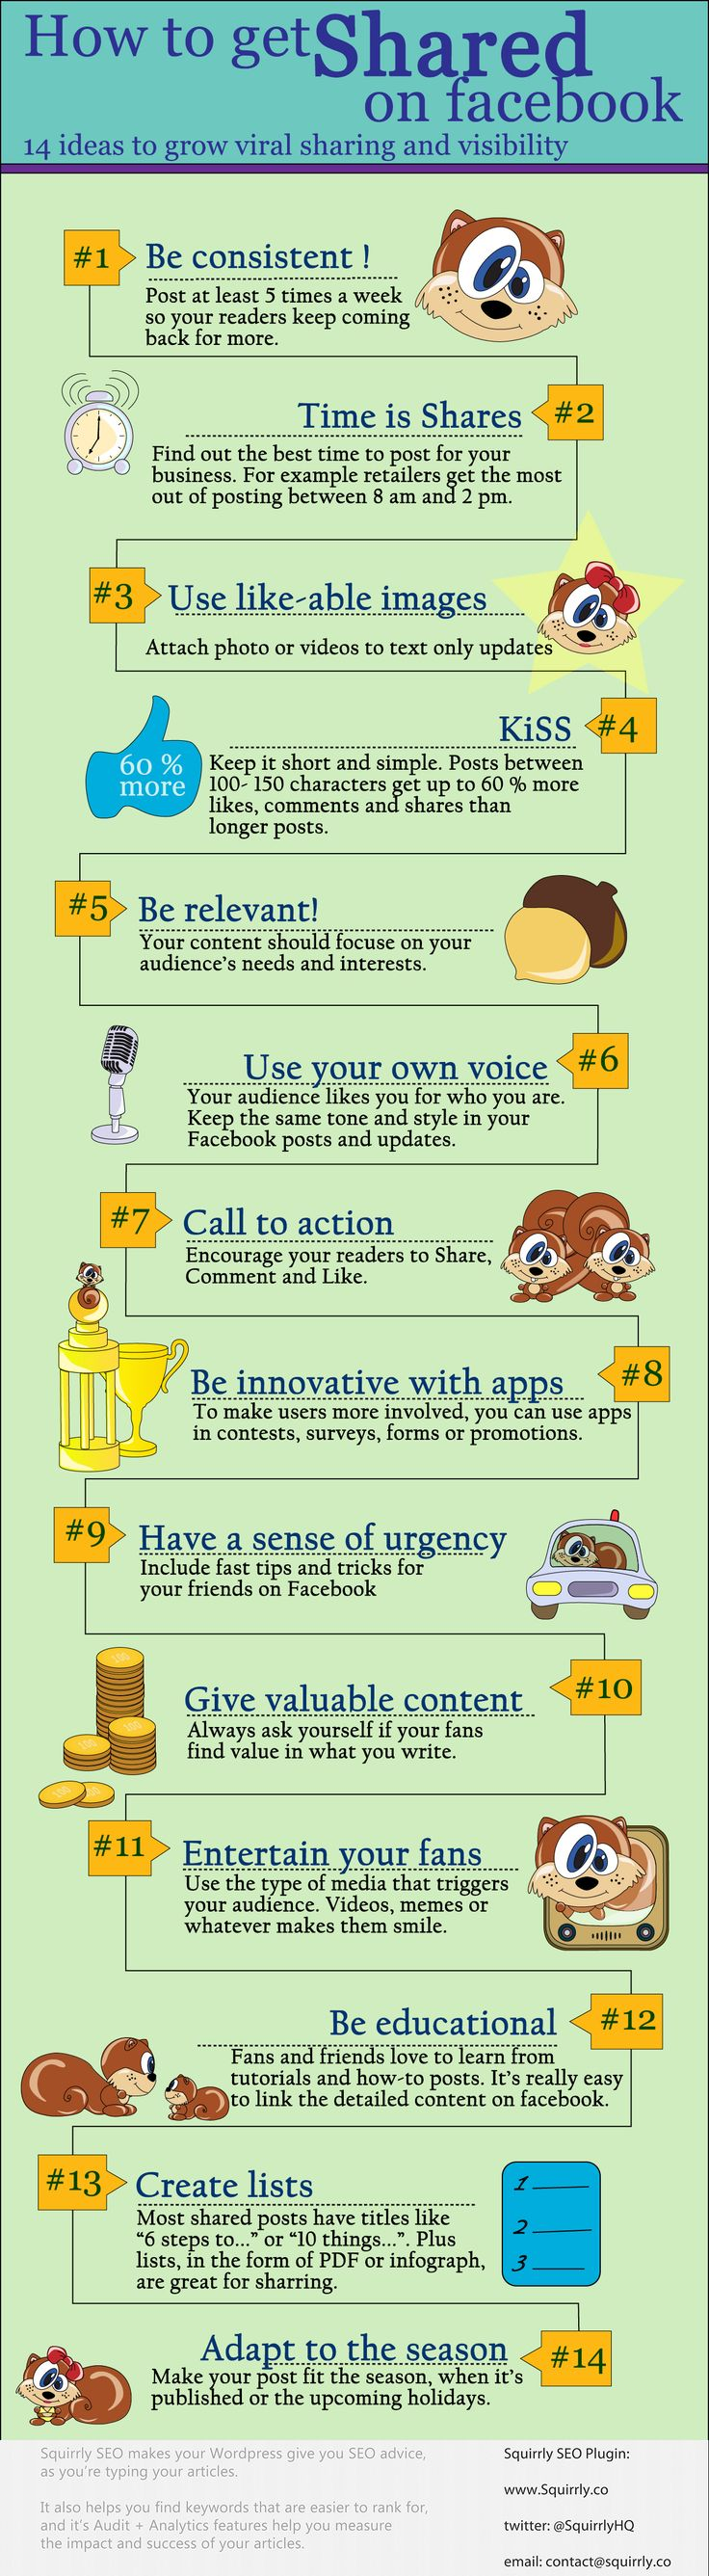 How To Get Shared On Facebook - 16 Ideas To Grow Viral Sharing And Visibility #infographic